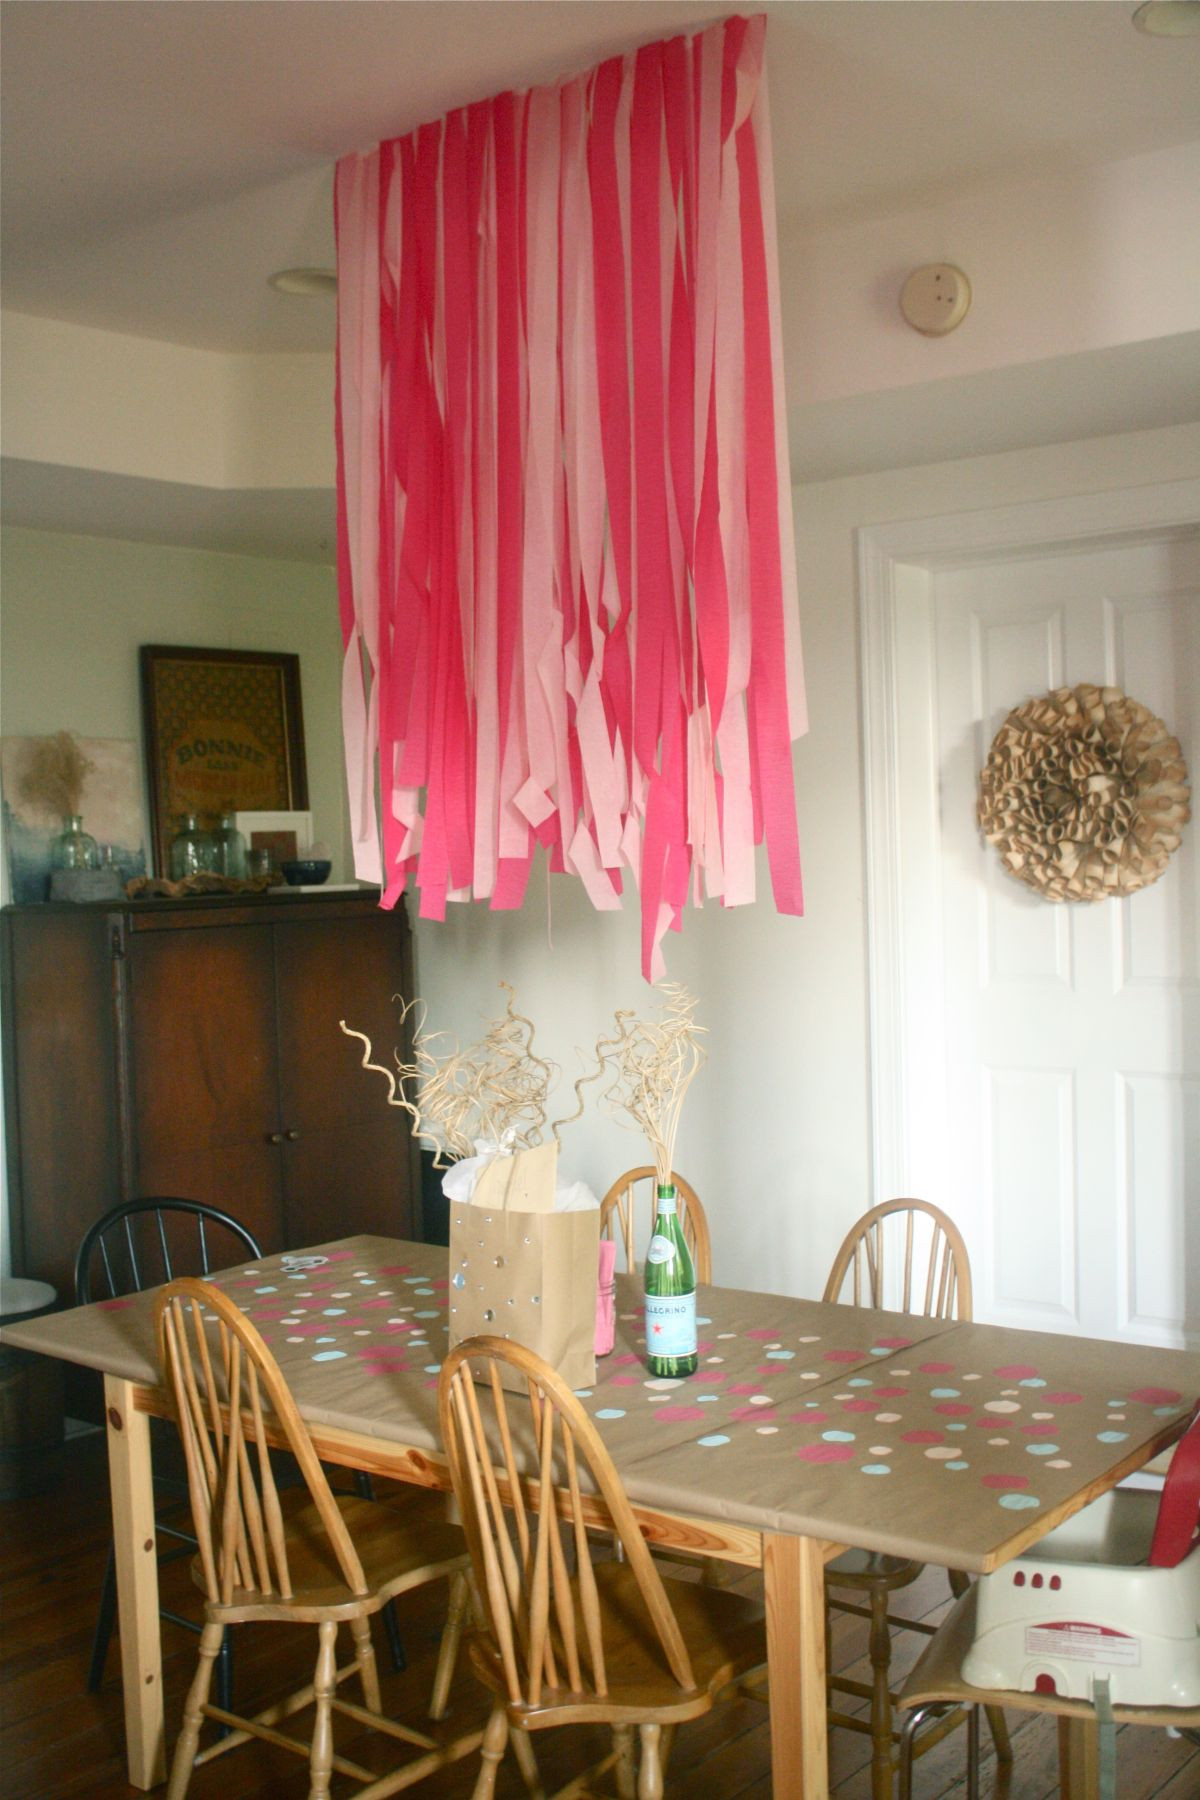 Best ideas about Diy Birthday Decorations . Save or Pin 12 Easy DIY Birthday Decor Ideas Now.